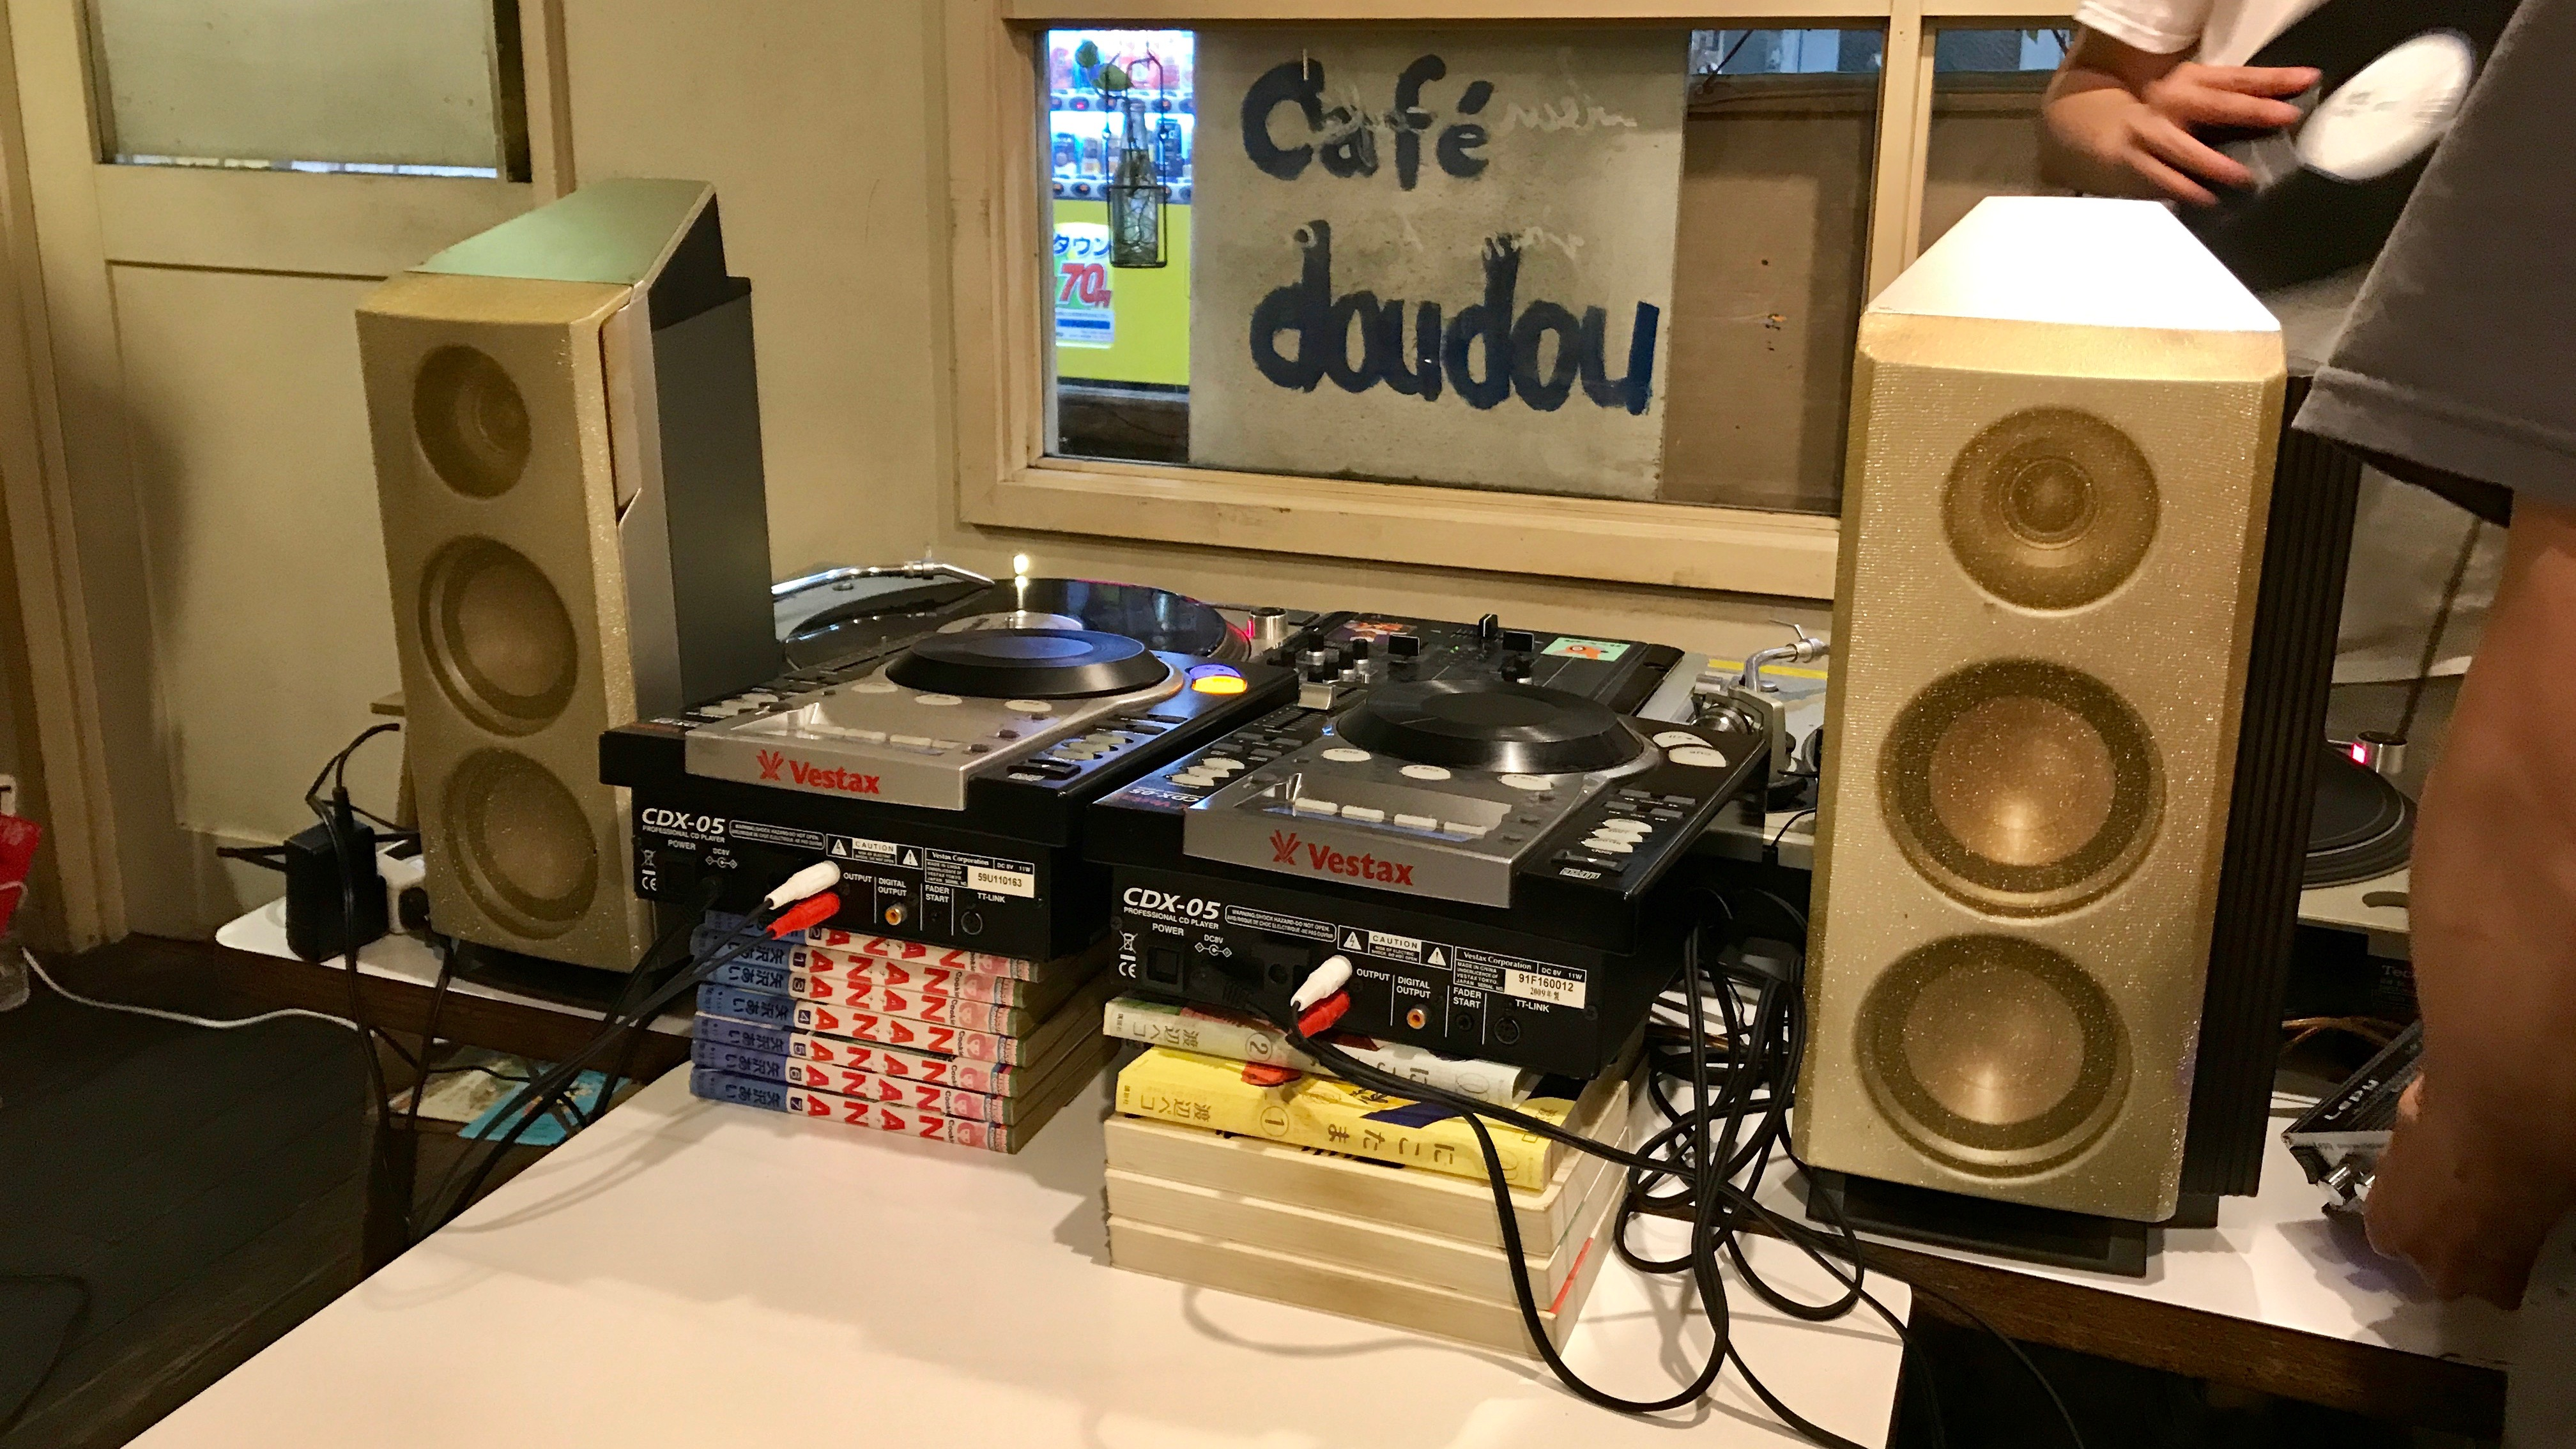 DJ Party in Cafe doudou